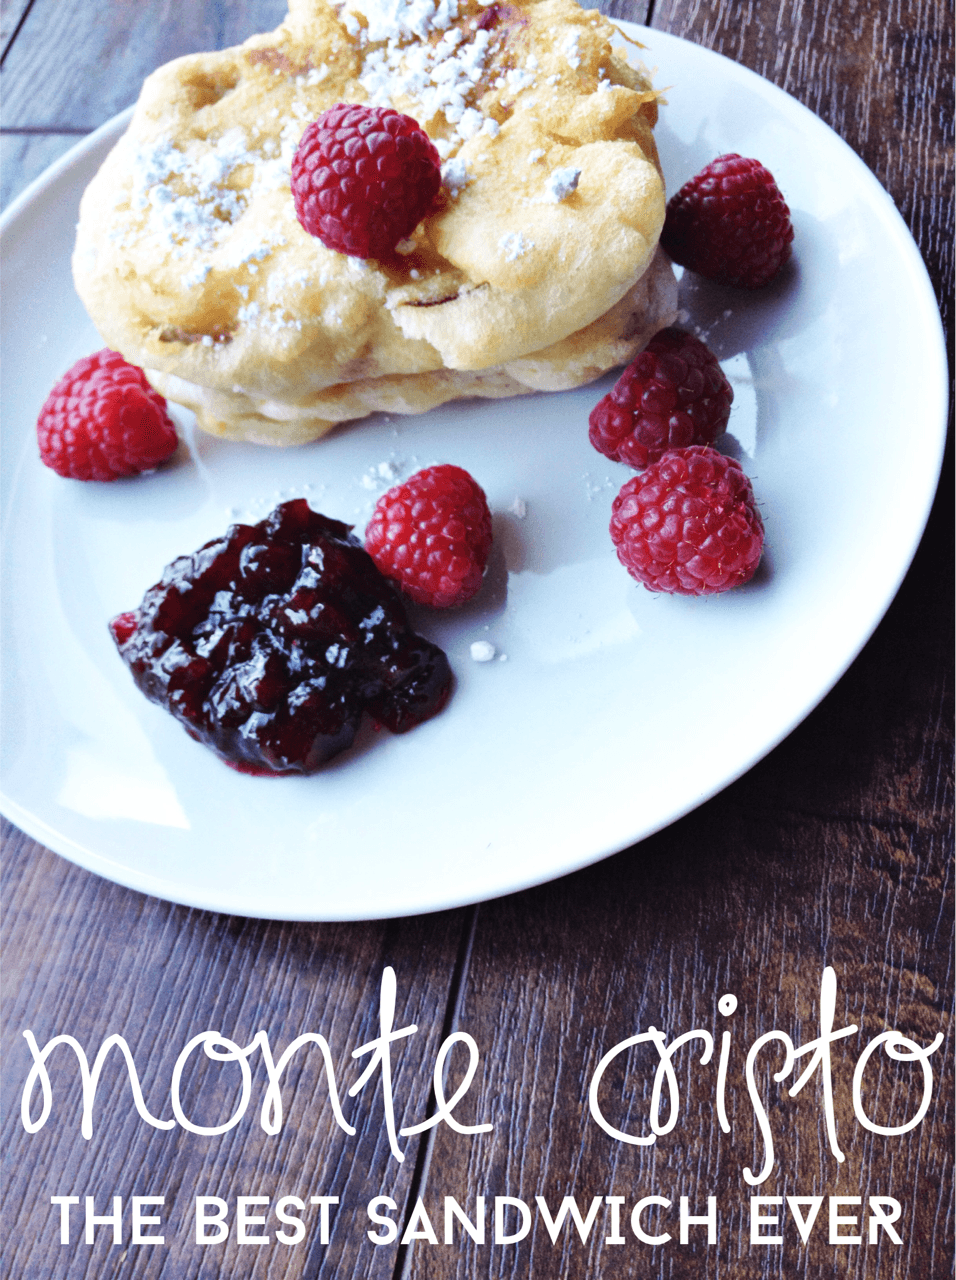 Monte Cristo Sandwiches With Rhubarb + Blueberry Jam